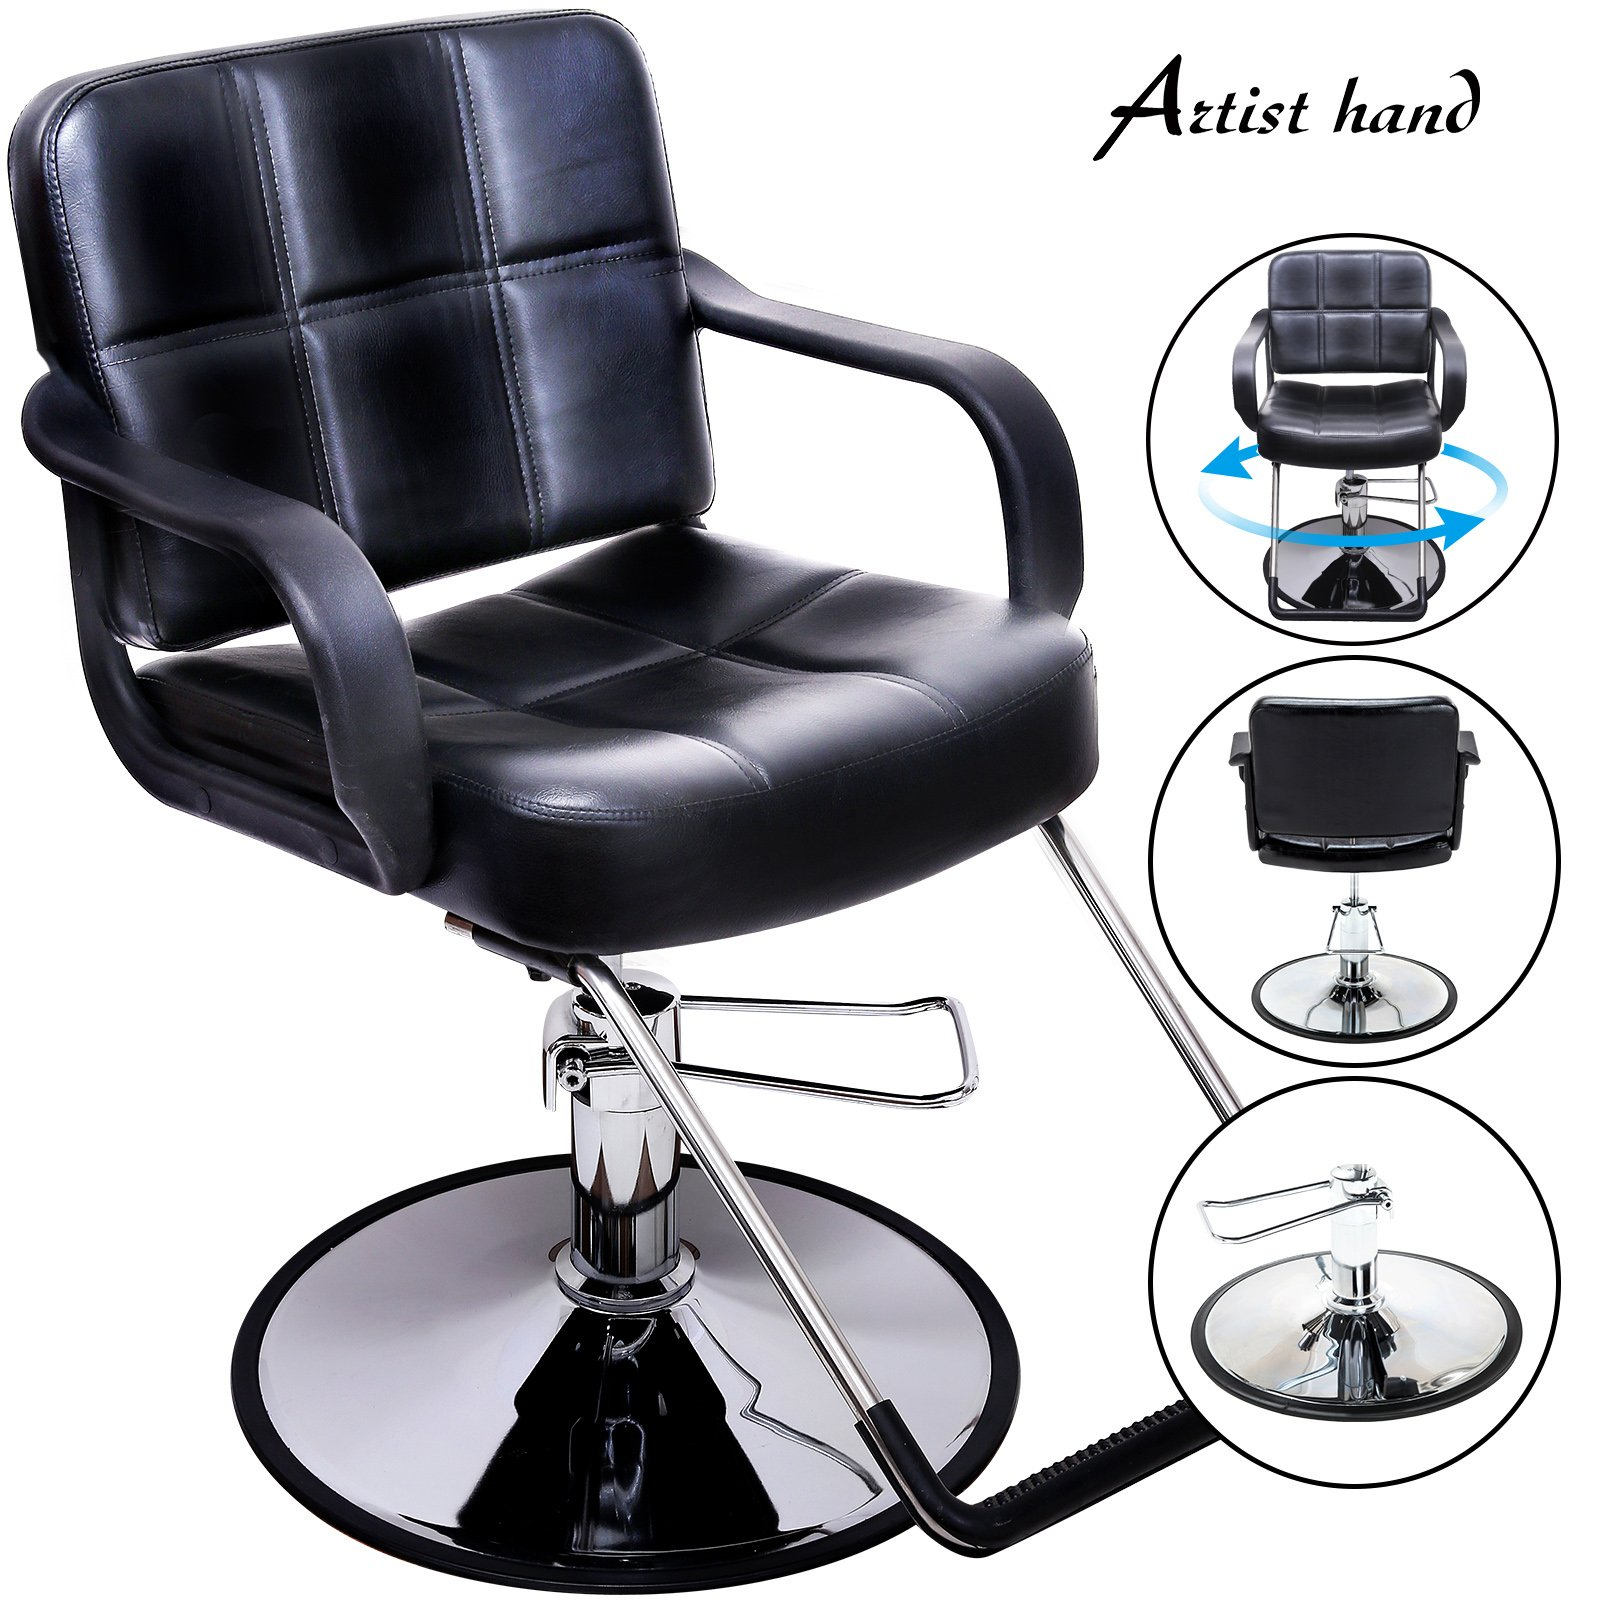 Artist Hand Hydraulic Barber Chair Salon Chair for Hair Stylist Tattoo Chair Shampoo Salon Equipment by Artist Hand